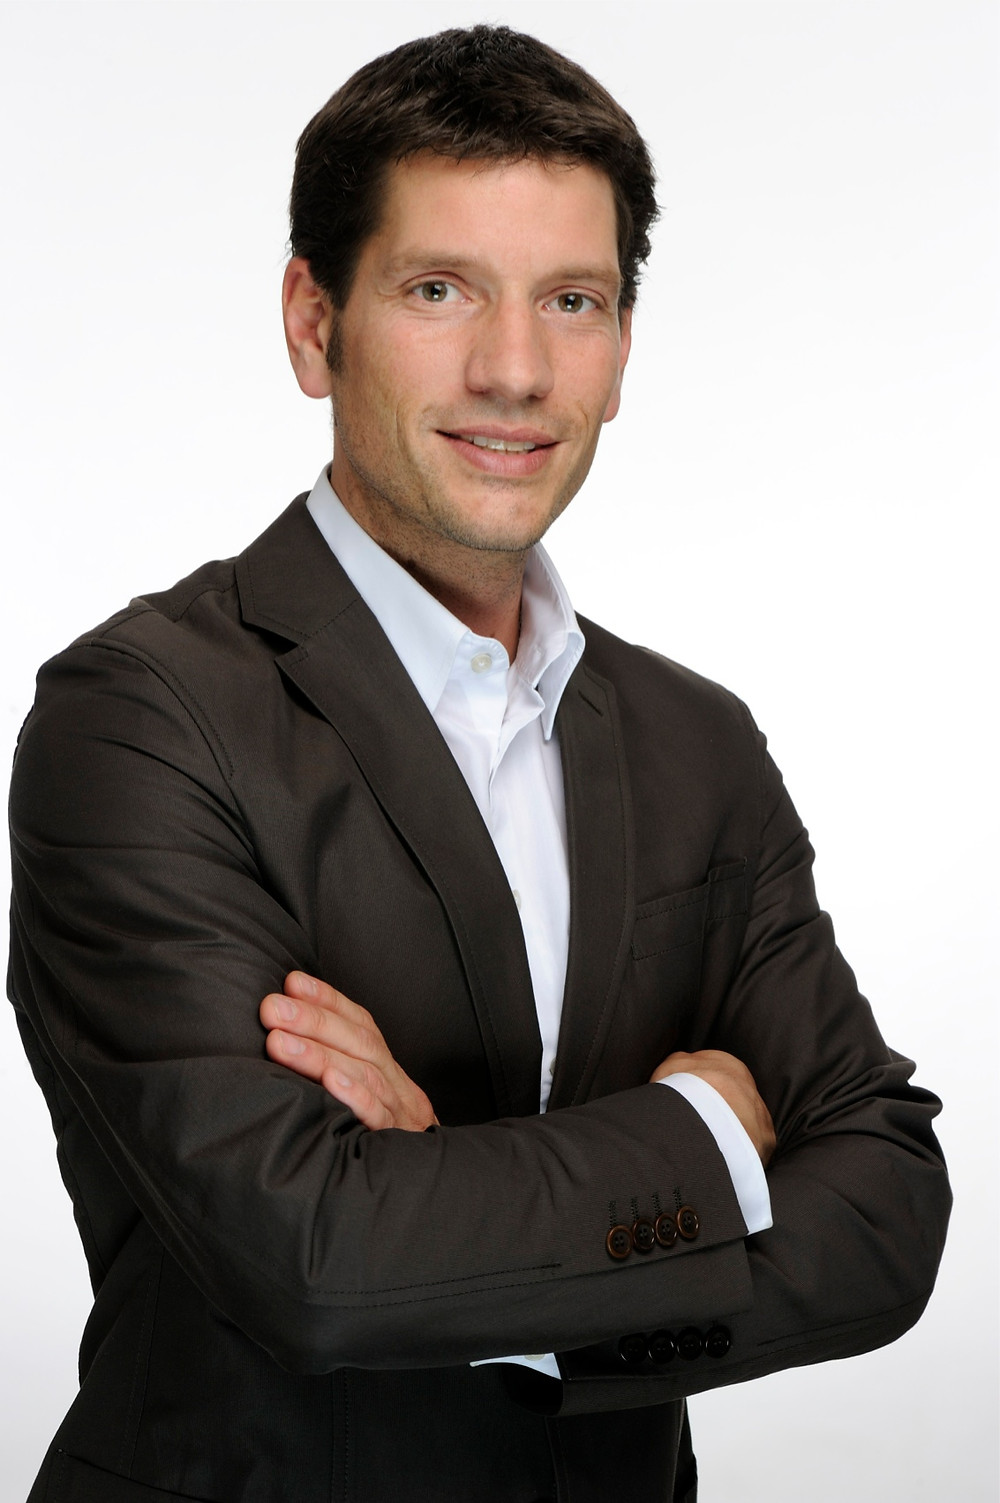 Marcel Delmer, Business Unit Director PC at Tech Data Germany